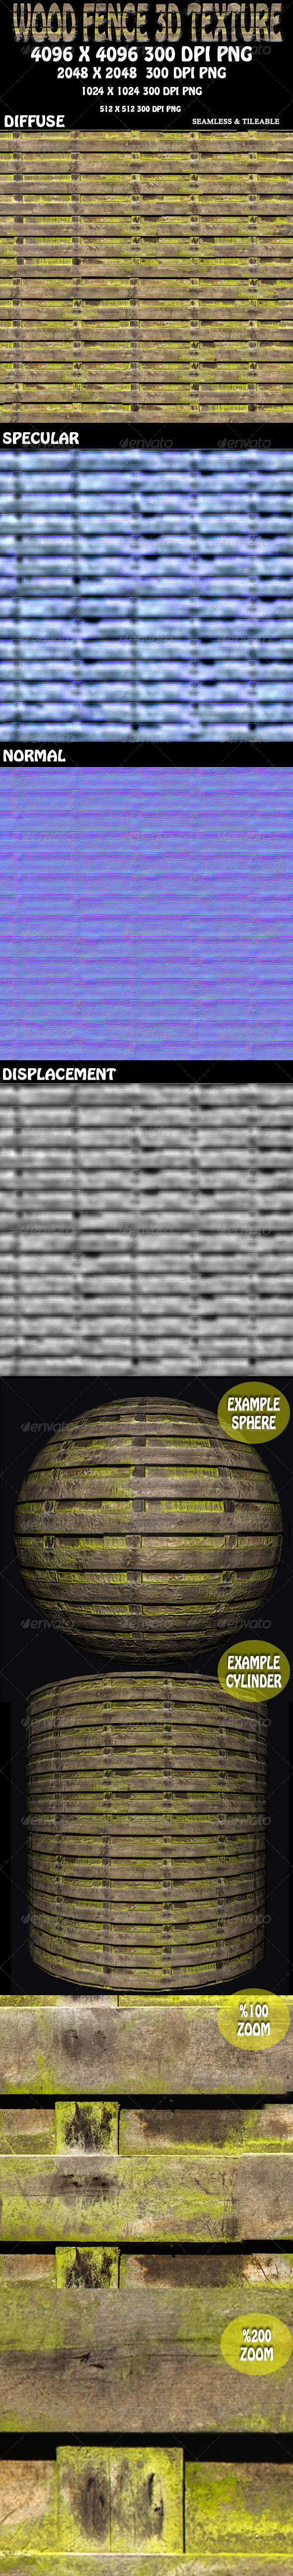 Wood Fence 3D Texture - 3DOcean Item for Sale